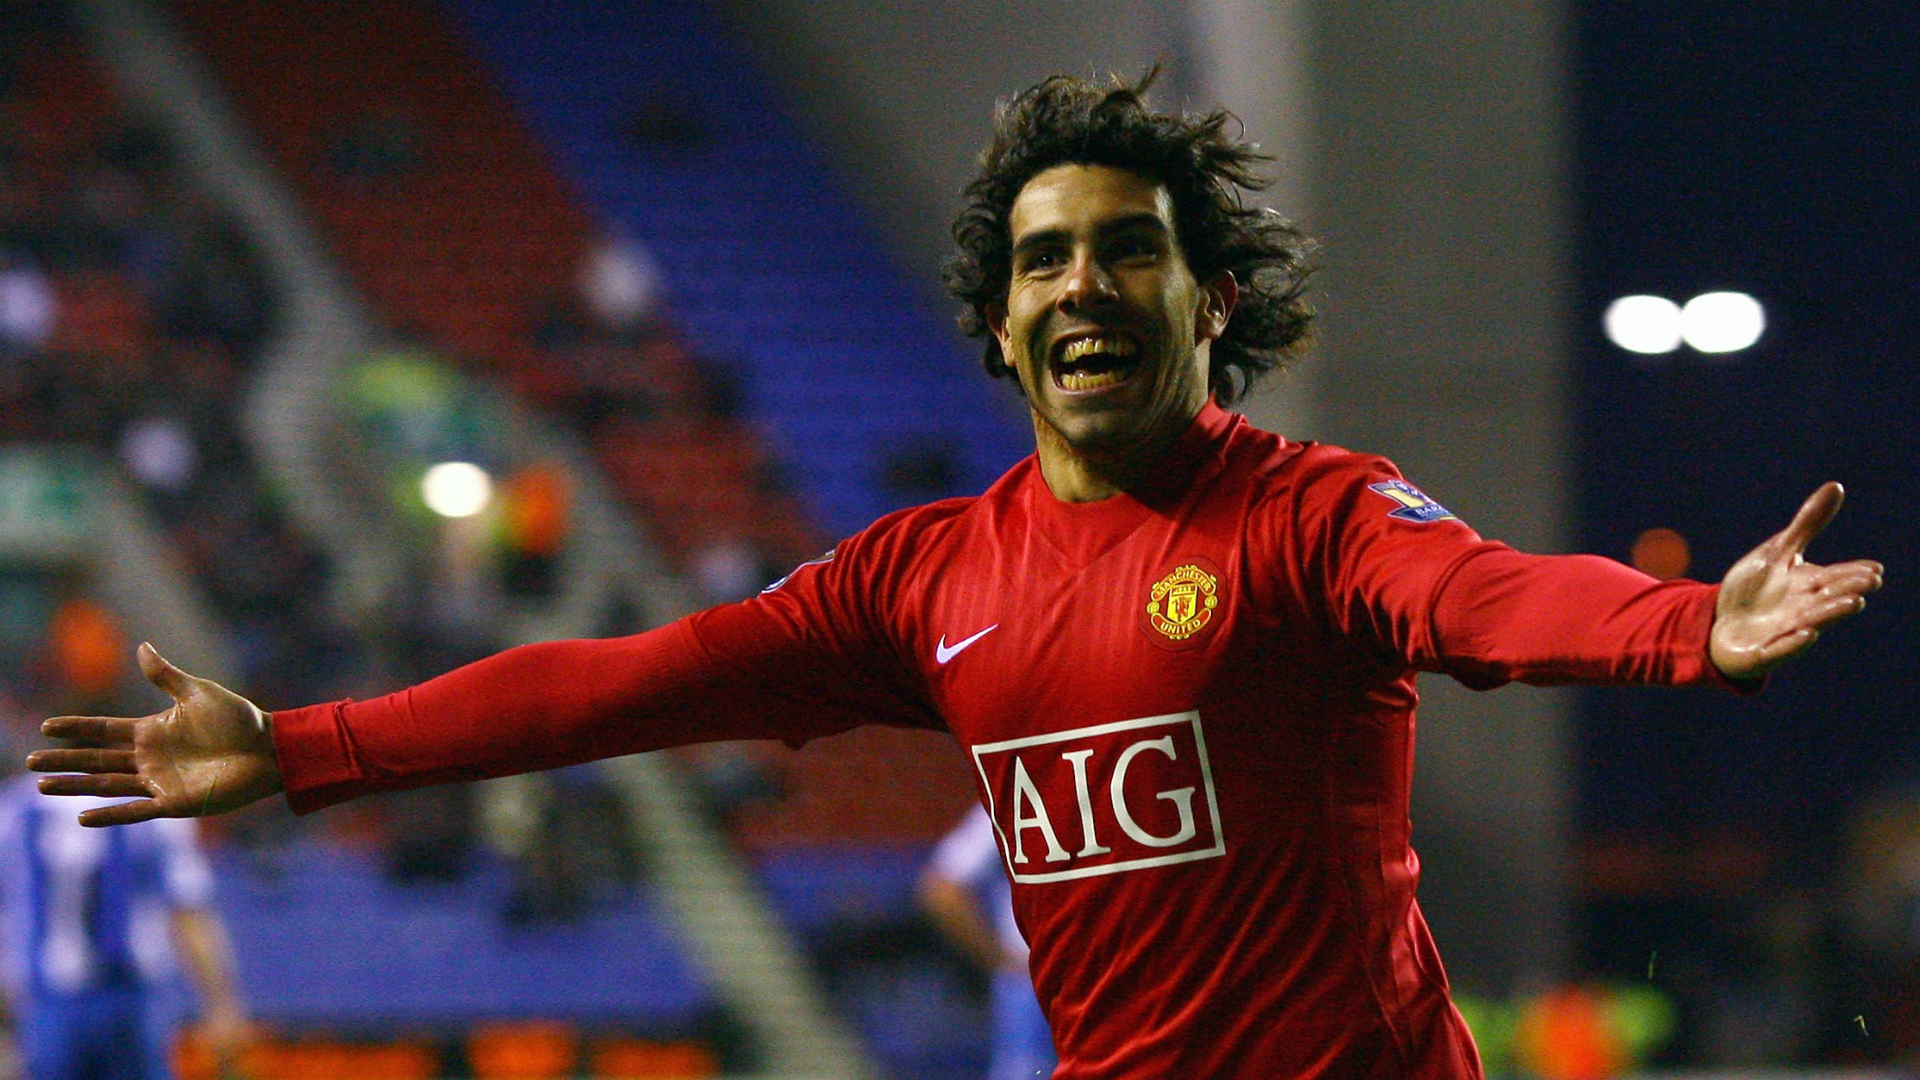 Neville goes head-to-head with Joorabchian over Tevez at Man Utd